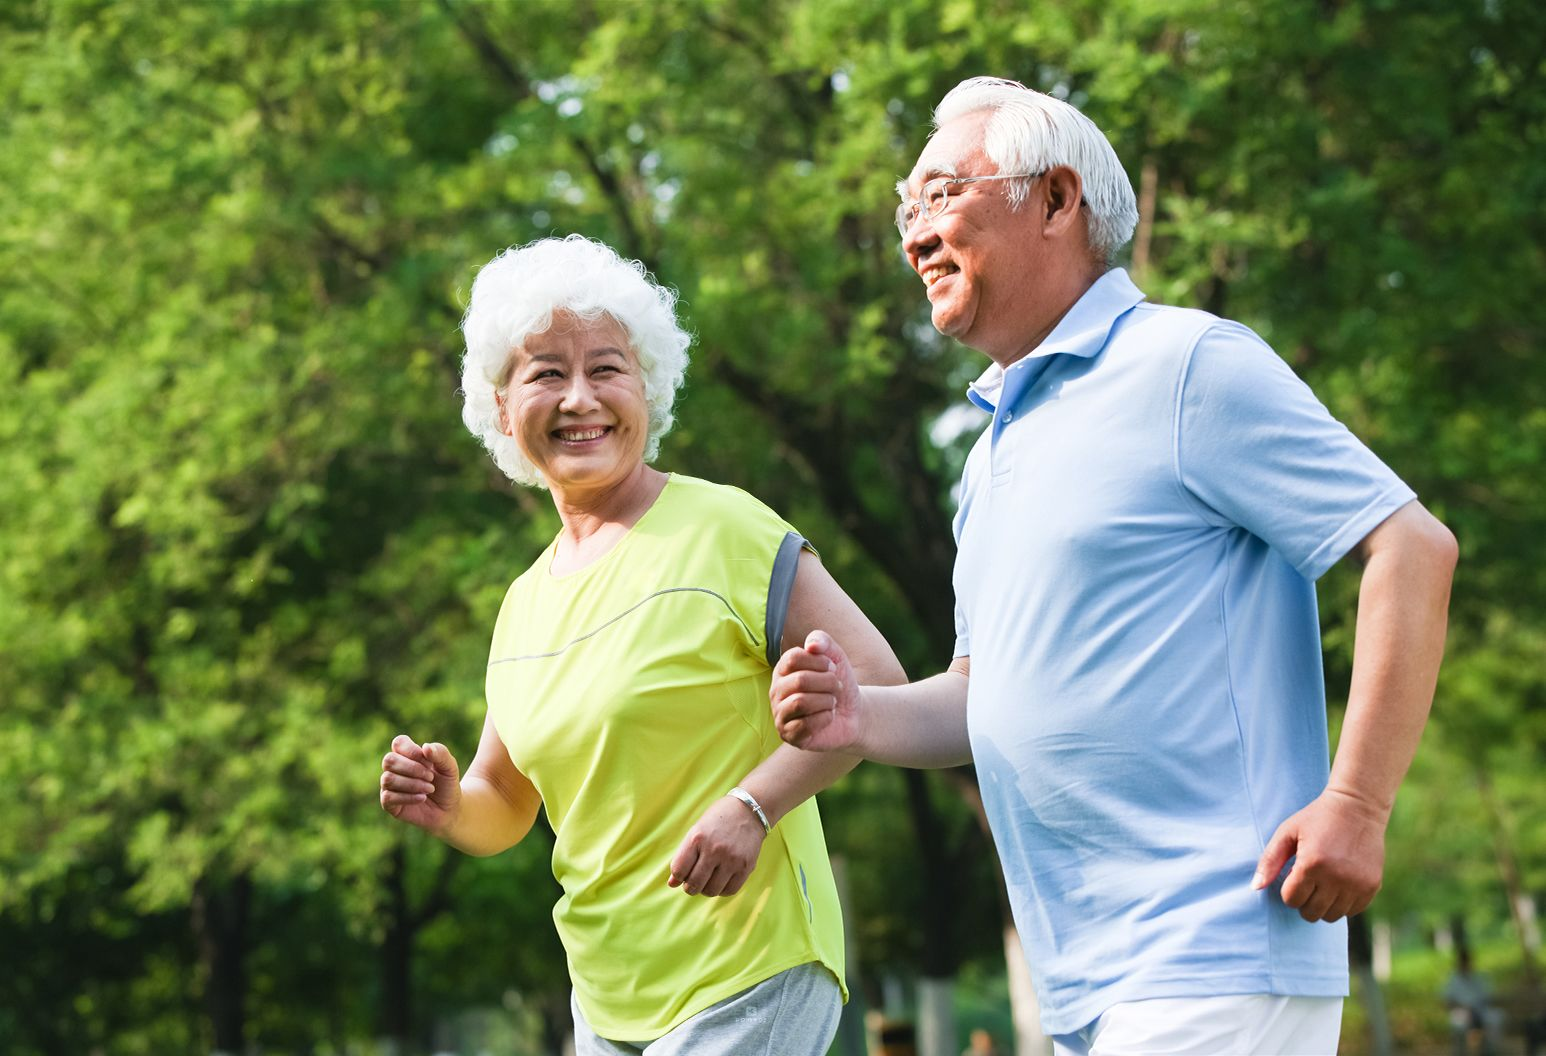 Elderly man and woman jogging outdoors